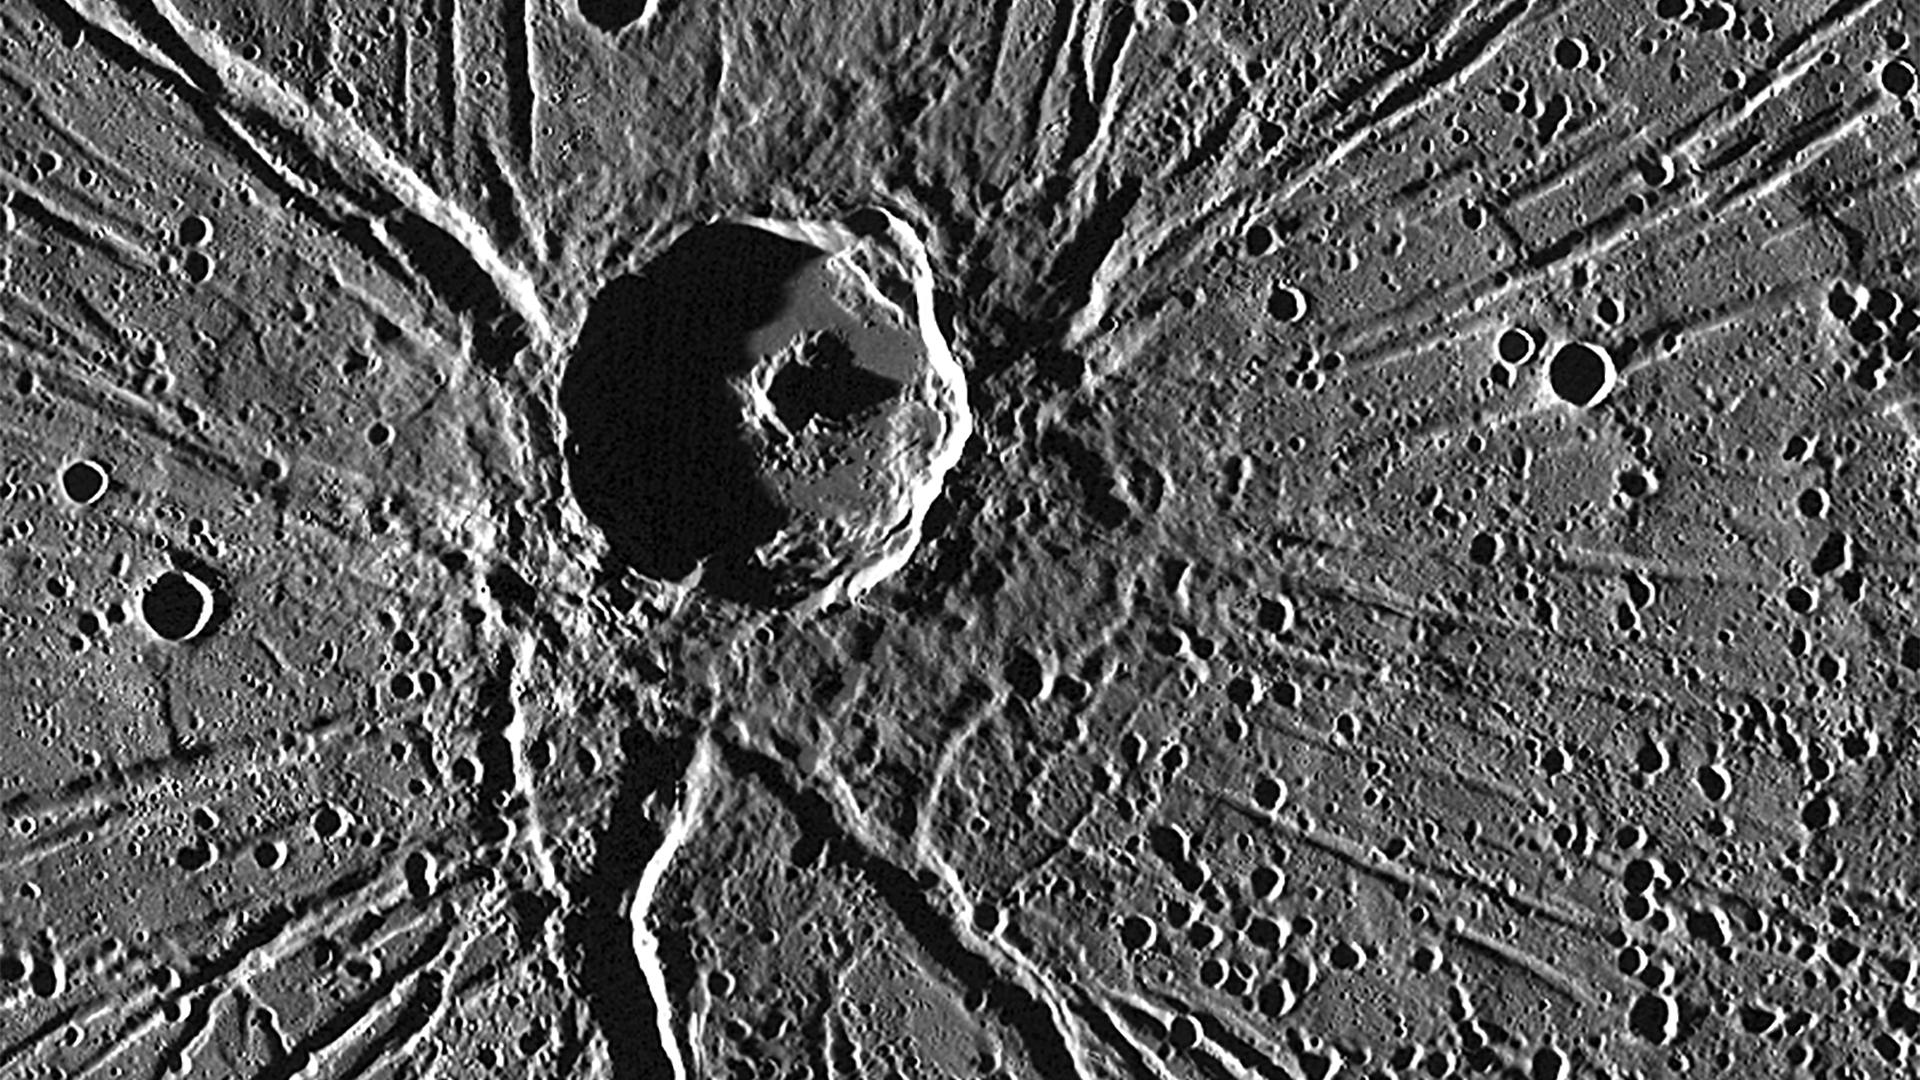 One of the most captivating views acquired during MESSENGER's first Mercury flyby was of the crater Apollodorus surrounded by the radiating troughs of Pantheon Fossae.